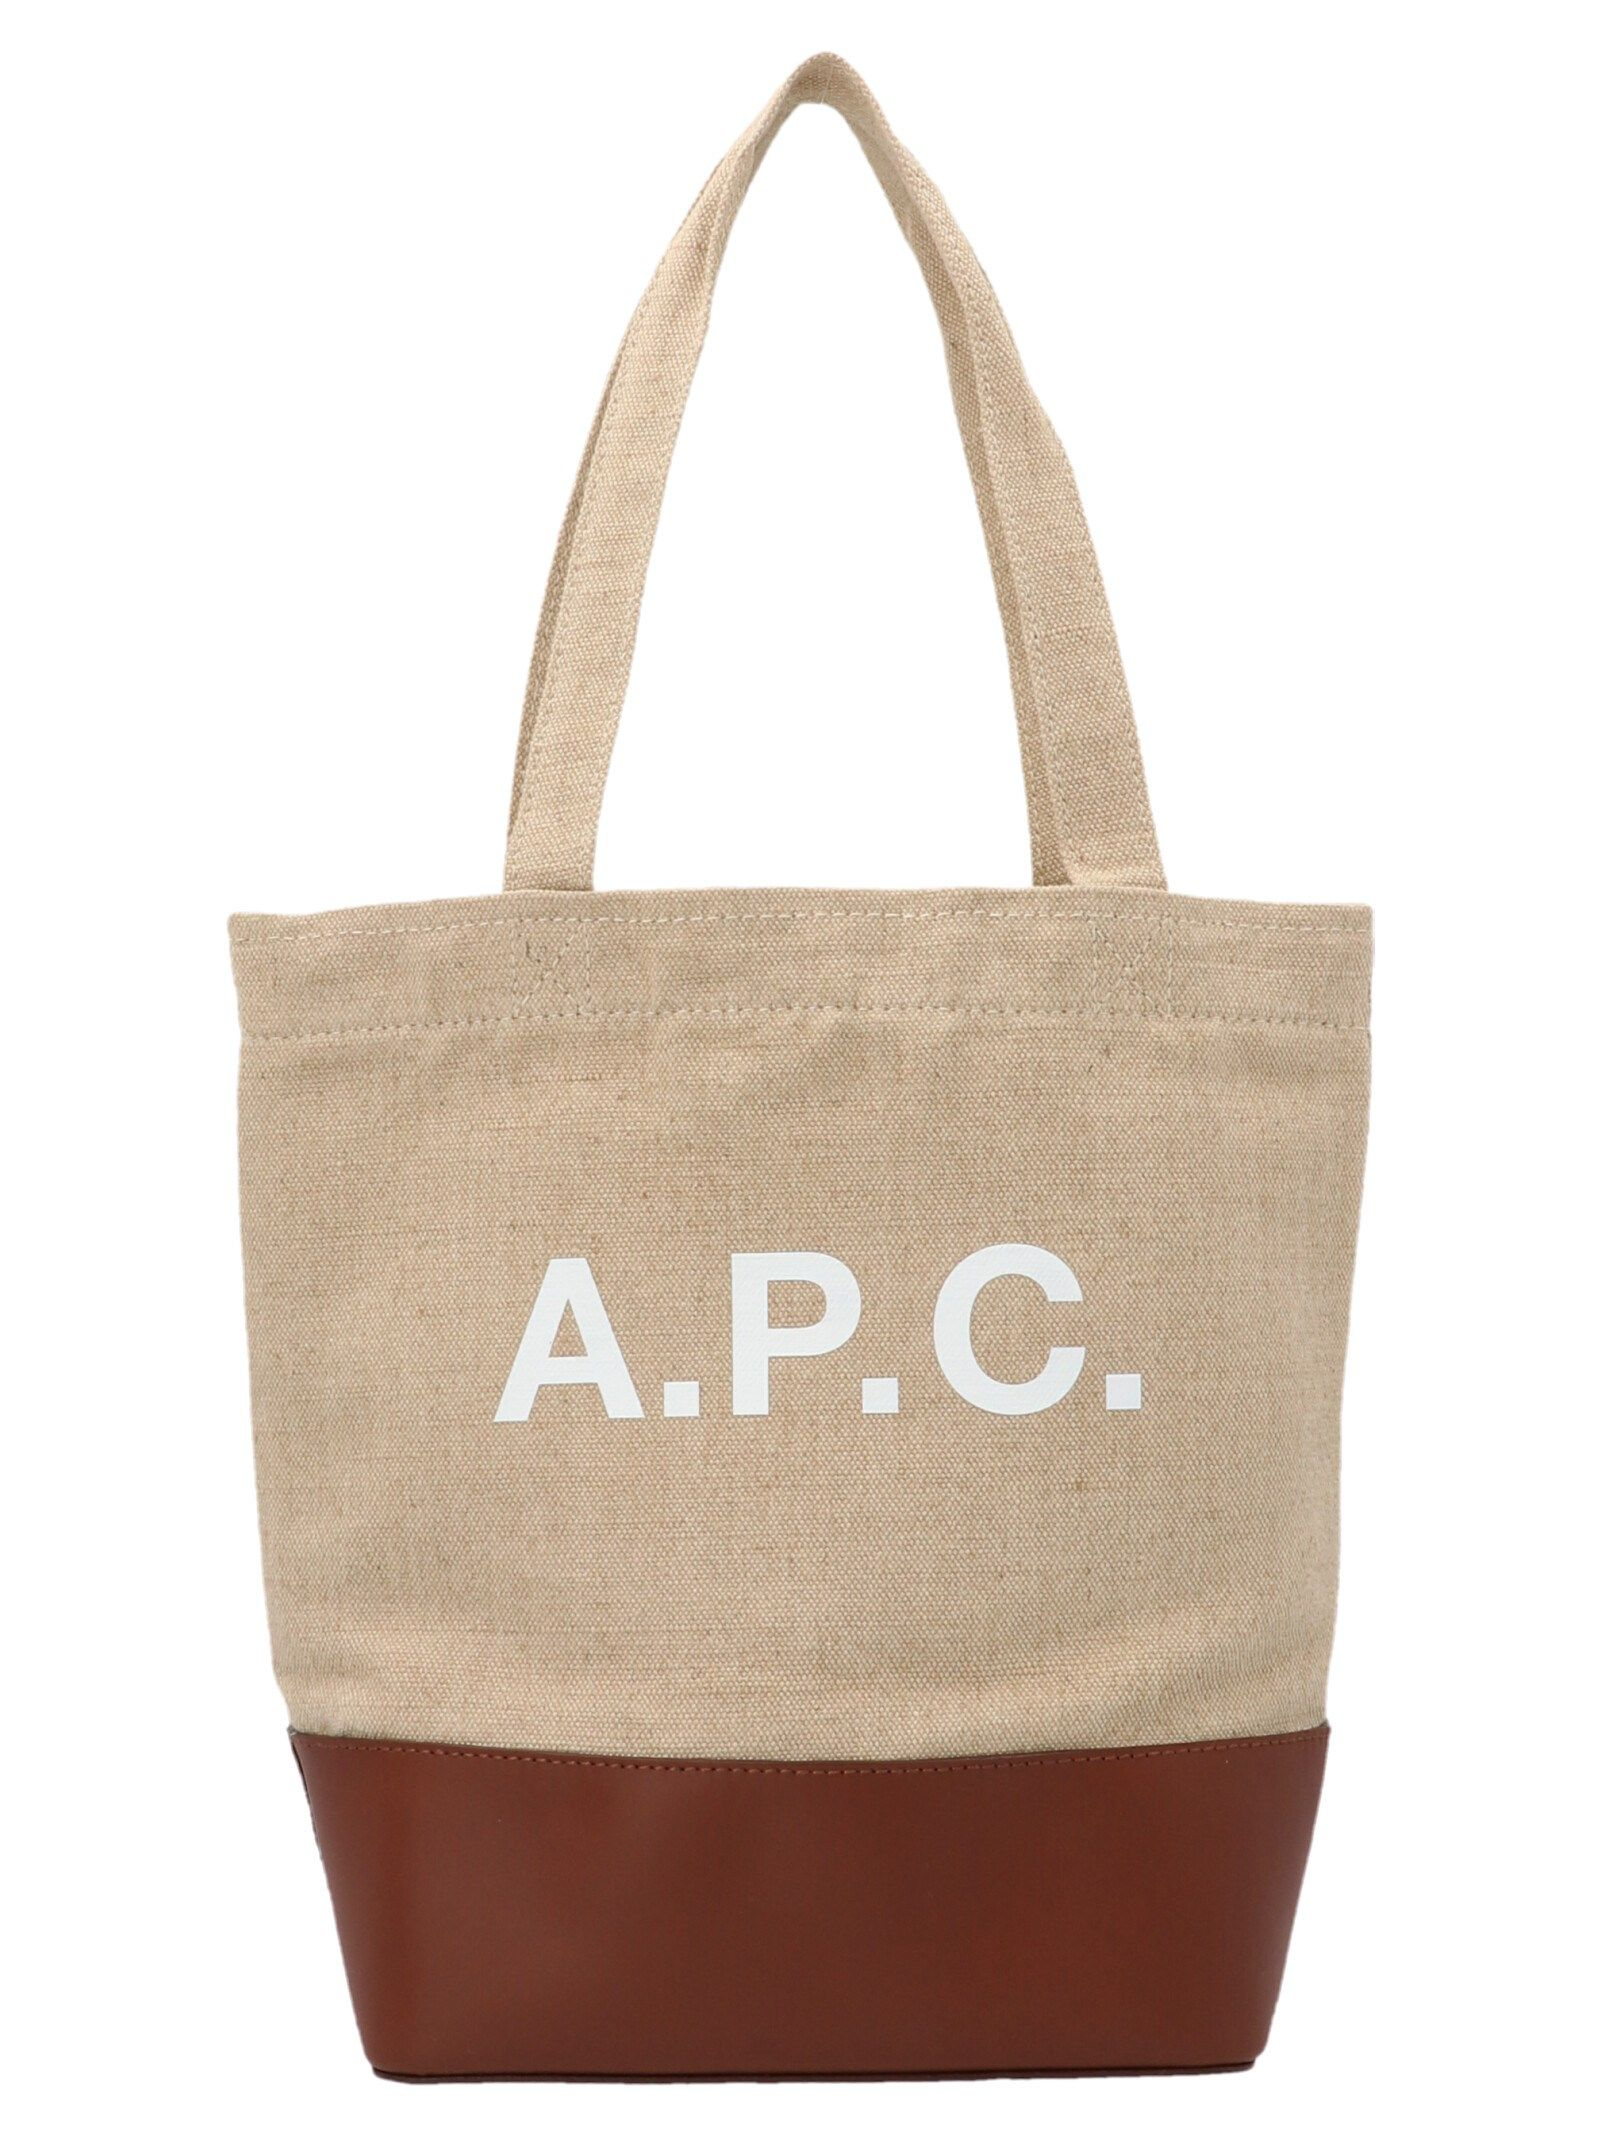 A.p.c. Axelle Small Tote In Beige